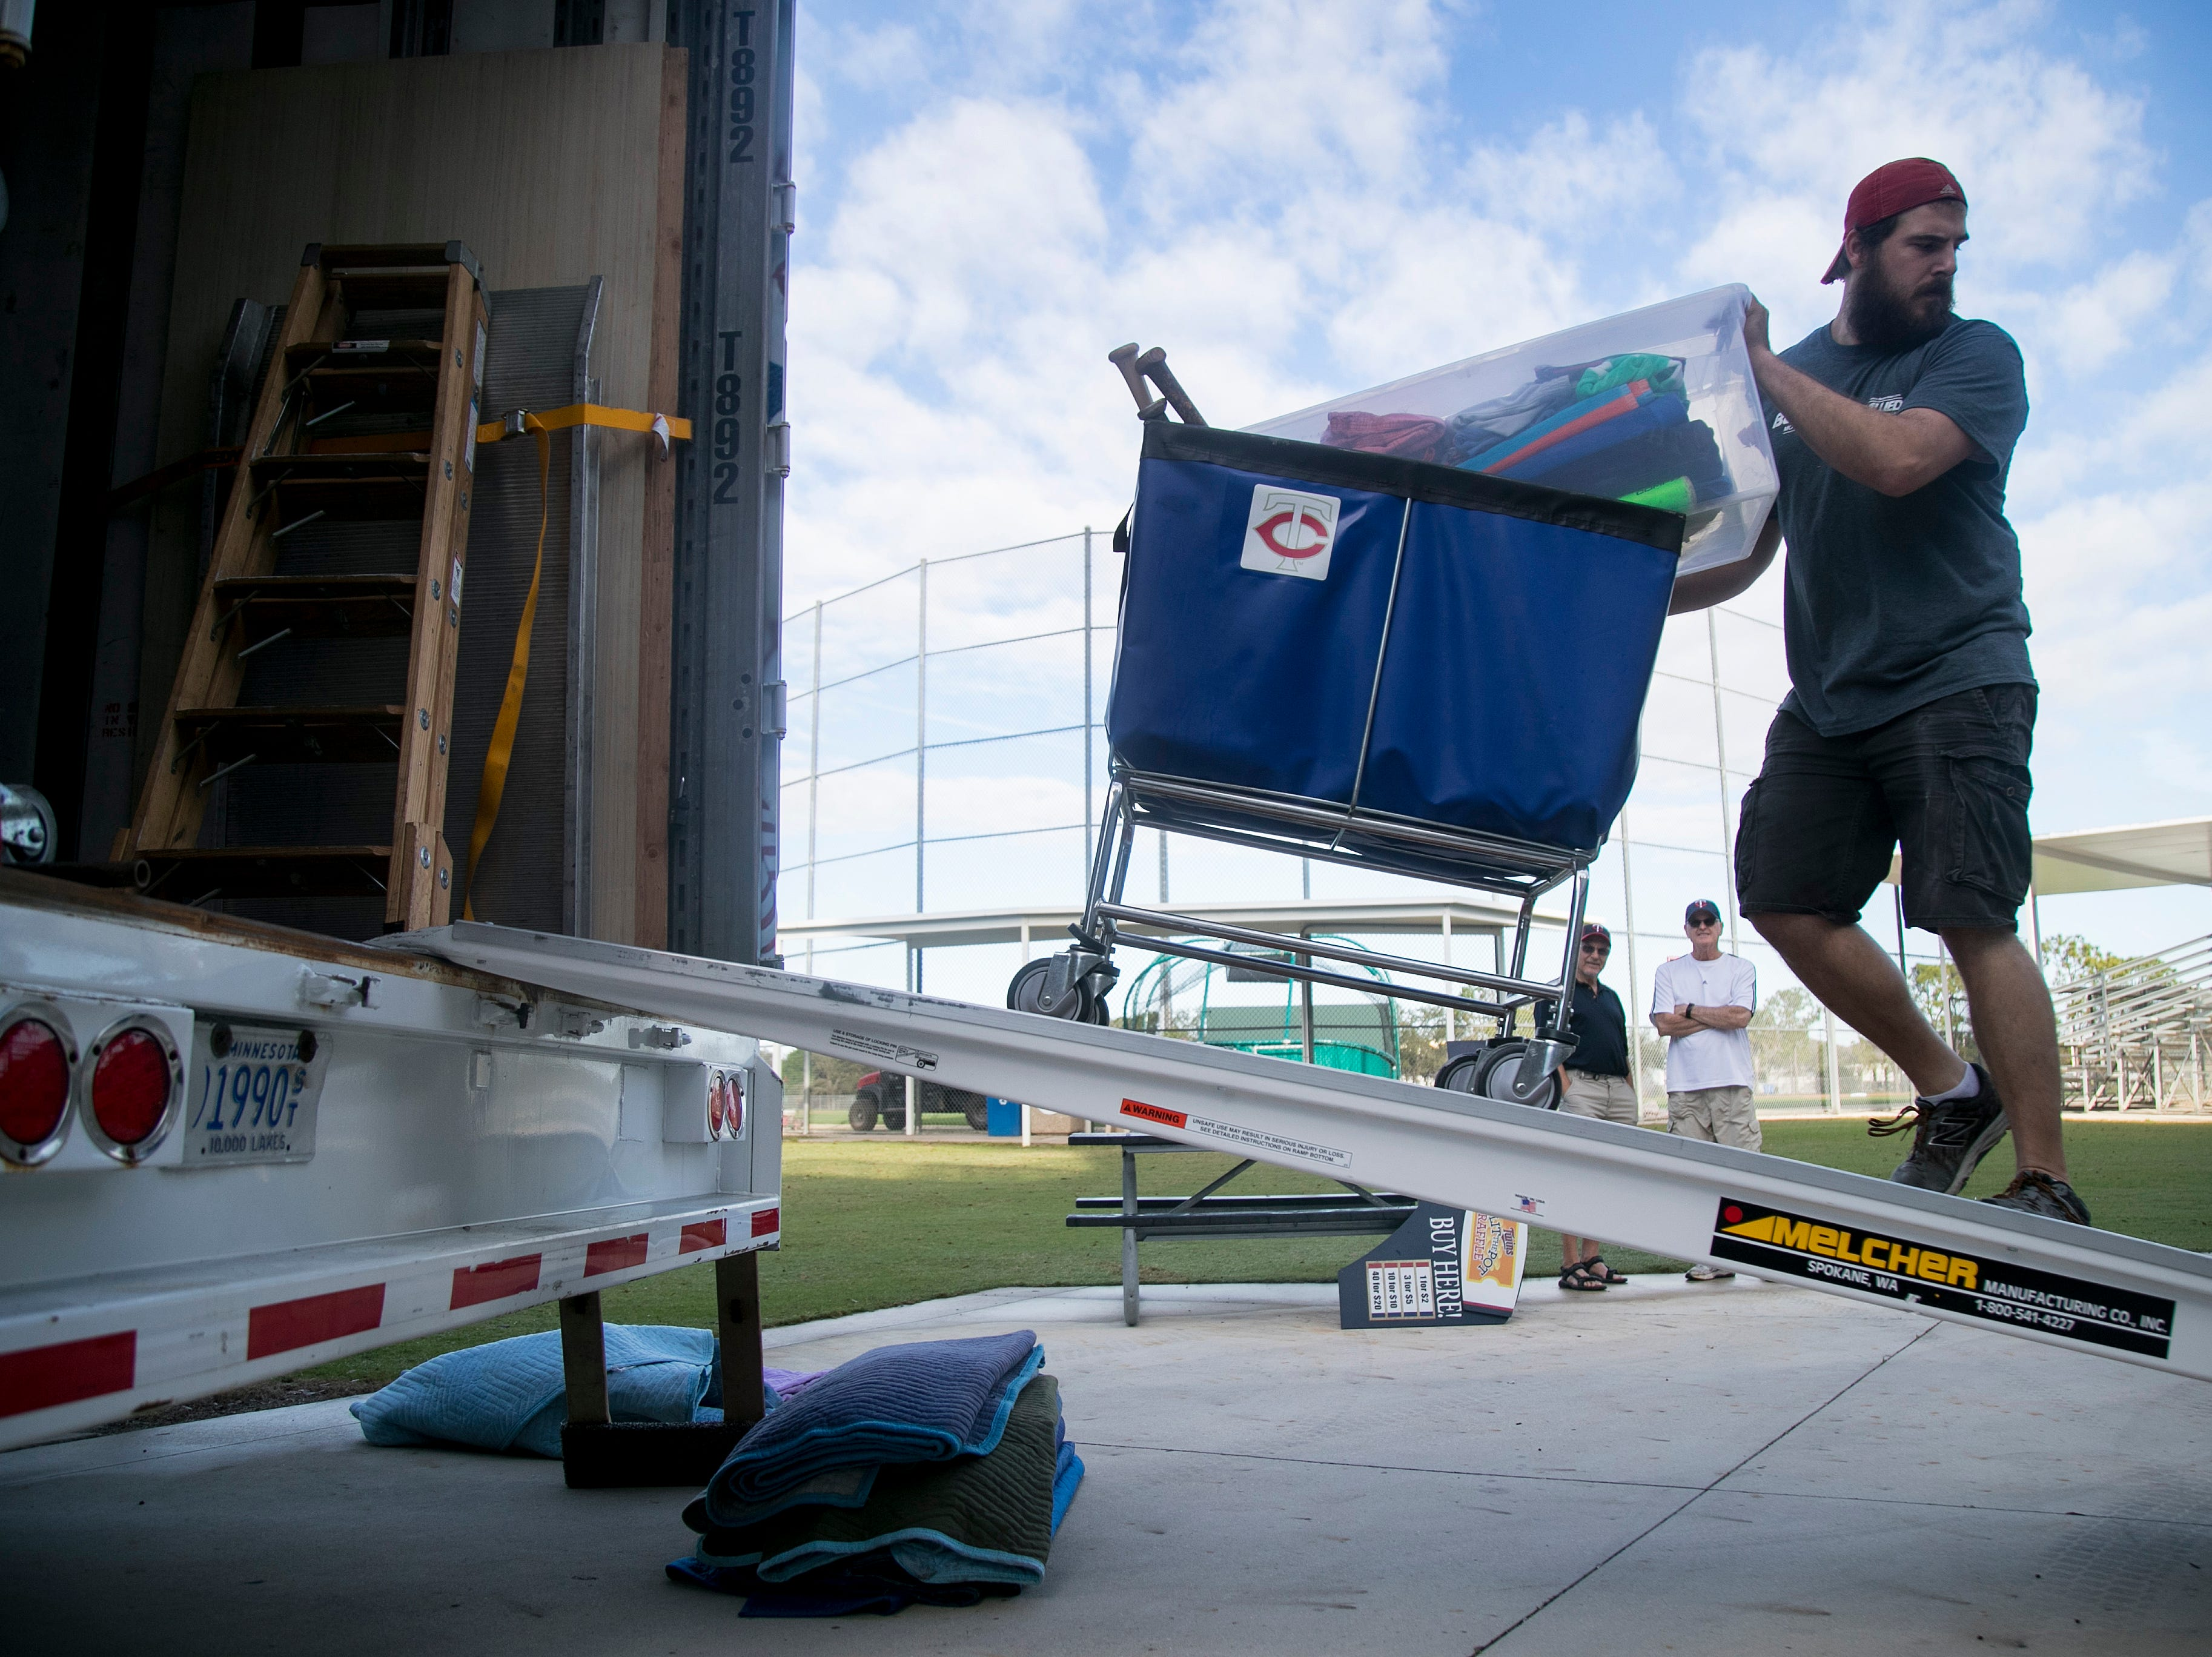 Joe Fischer unloads the Minnesota Twins truck on Friday, Feb. 8, 2019, at the Century Link Sports Complex in Fort Myers. The first Spring Training practice for pitchers and catchers is on Wednesday.